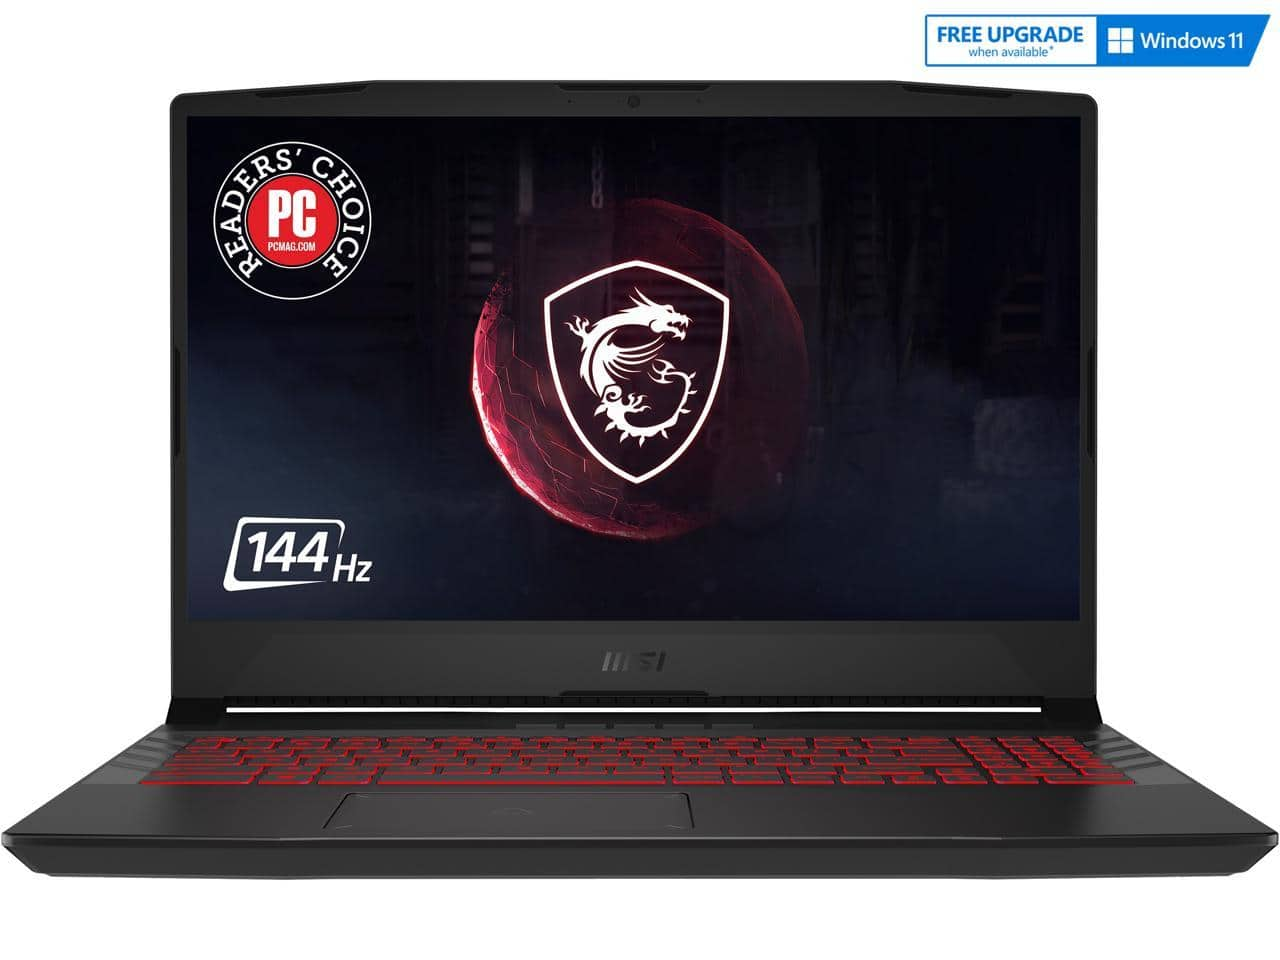 """MSI [15.6"""" 144Hz IPS,Intel Core i7-11800H,NVIDIA GeForce RTX3060,16GB DDR4,1TB HDD/512GB NVMe SSD]Gaming Laptop for $1299 w/ FS after MIR"""